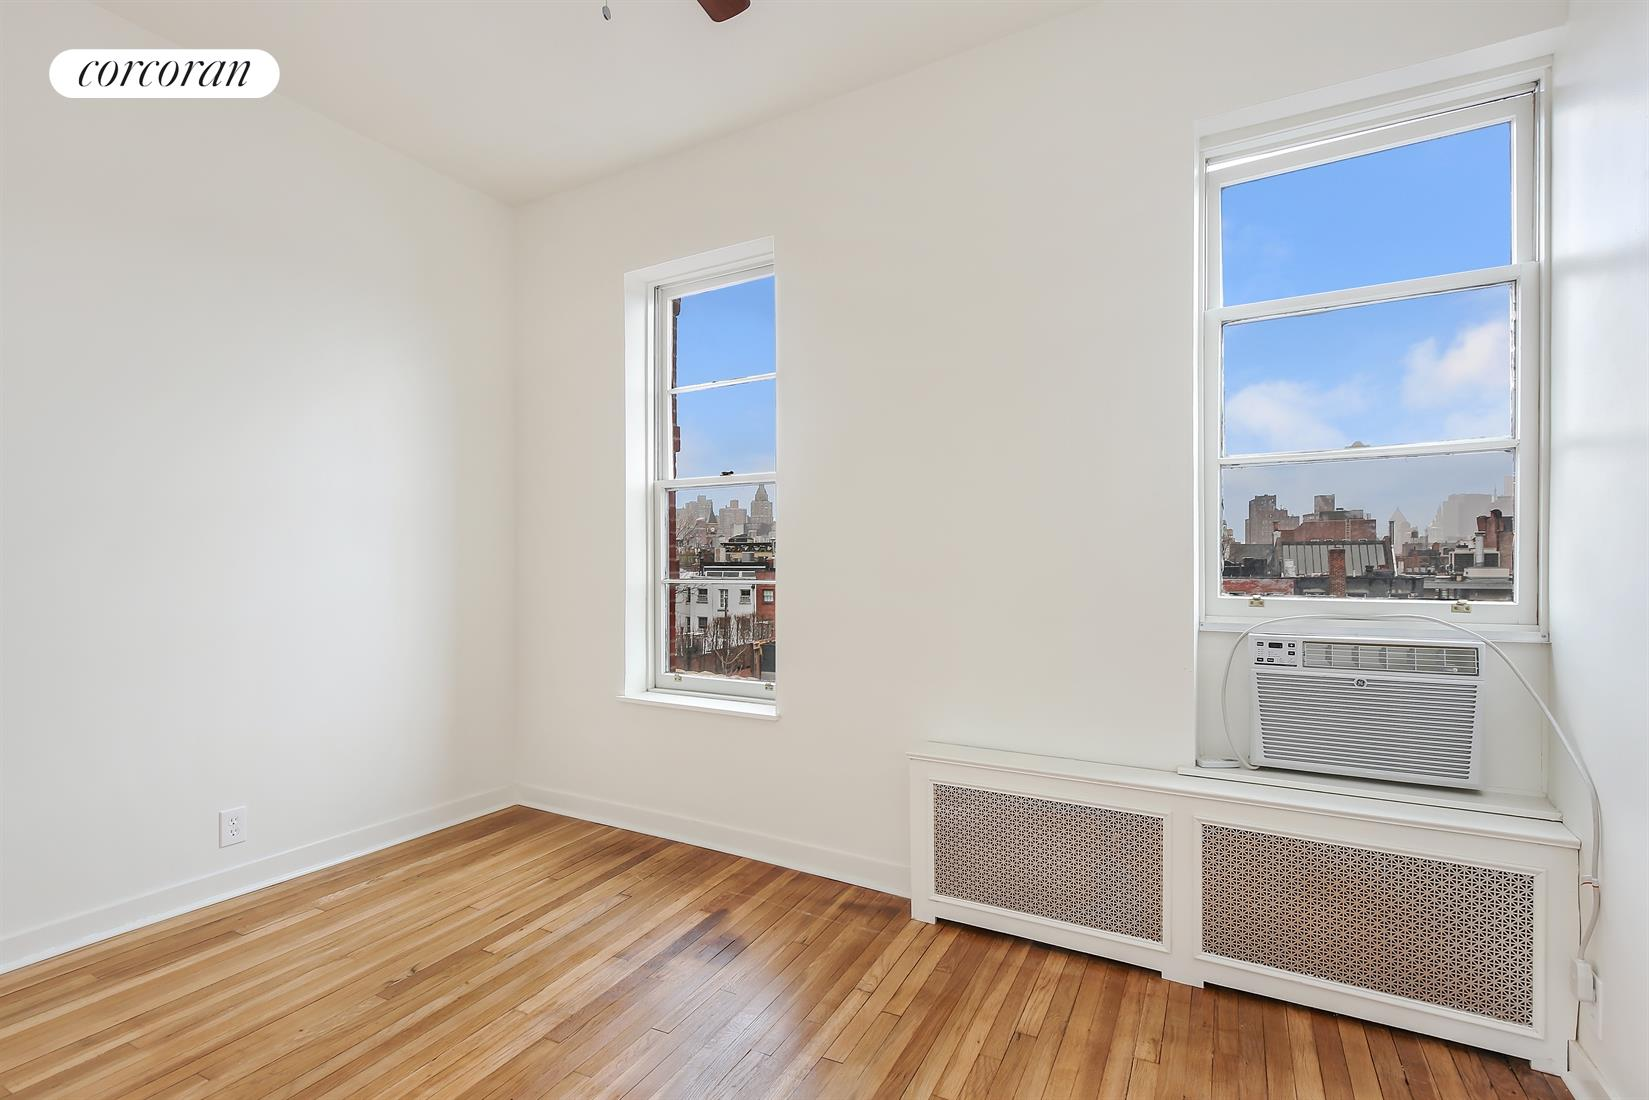 Corcoran, 259 West 12th Street, Apt. 6A, West Village Rentals ...